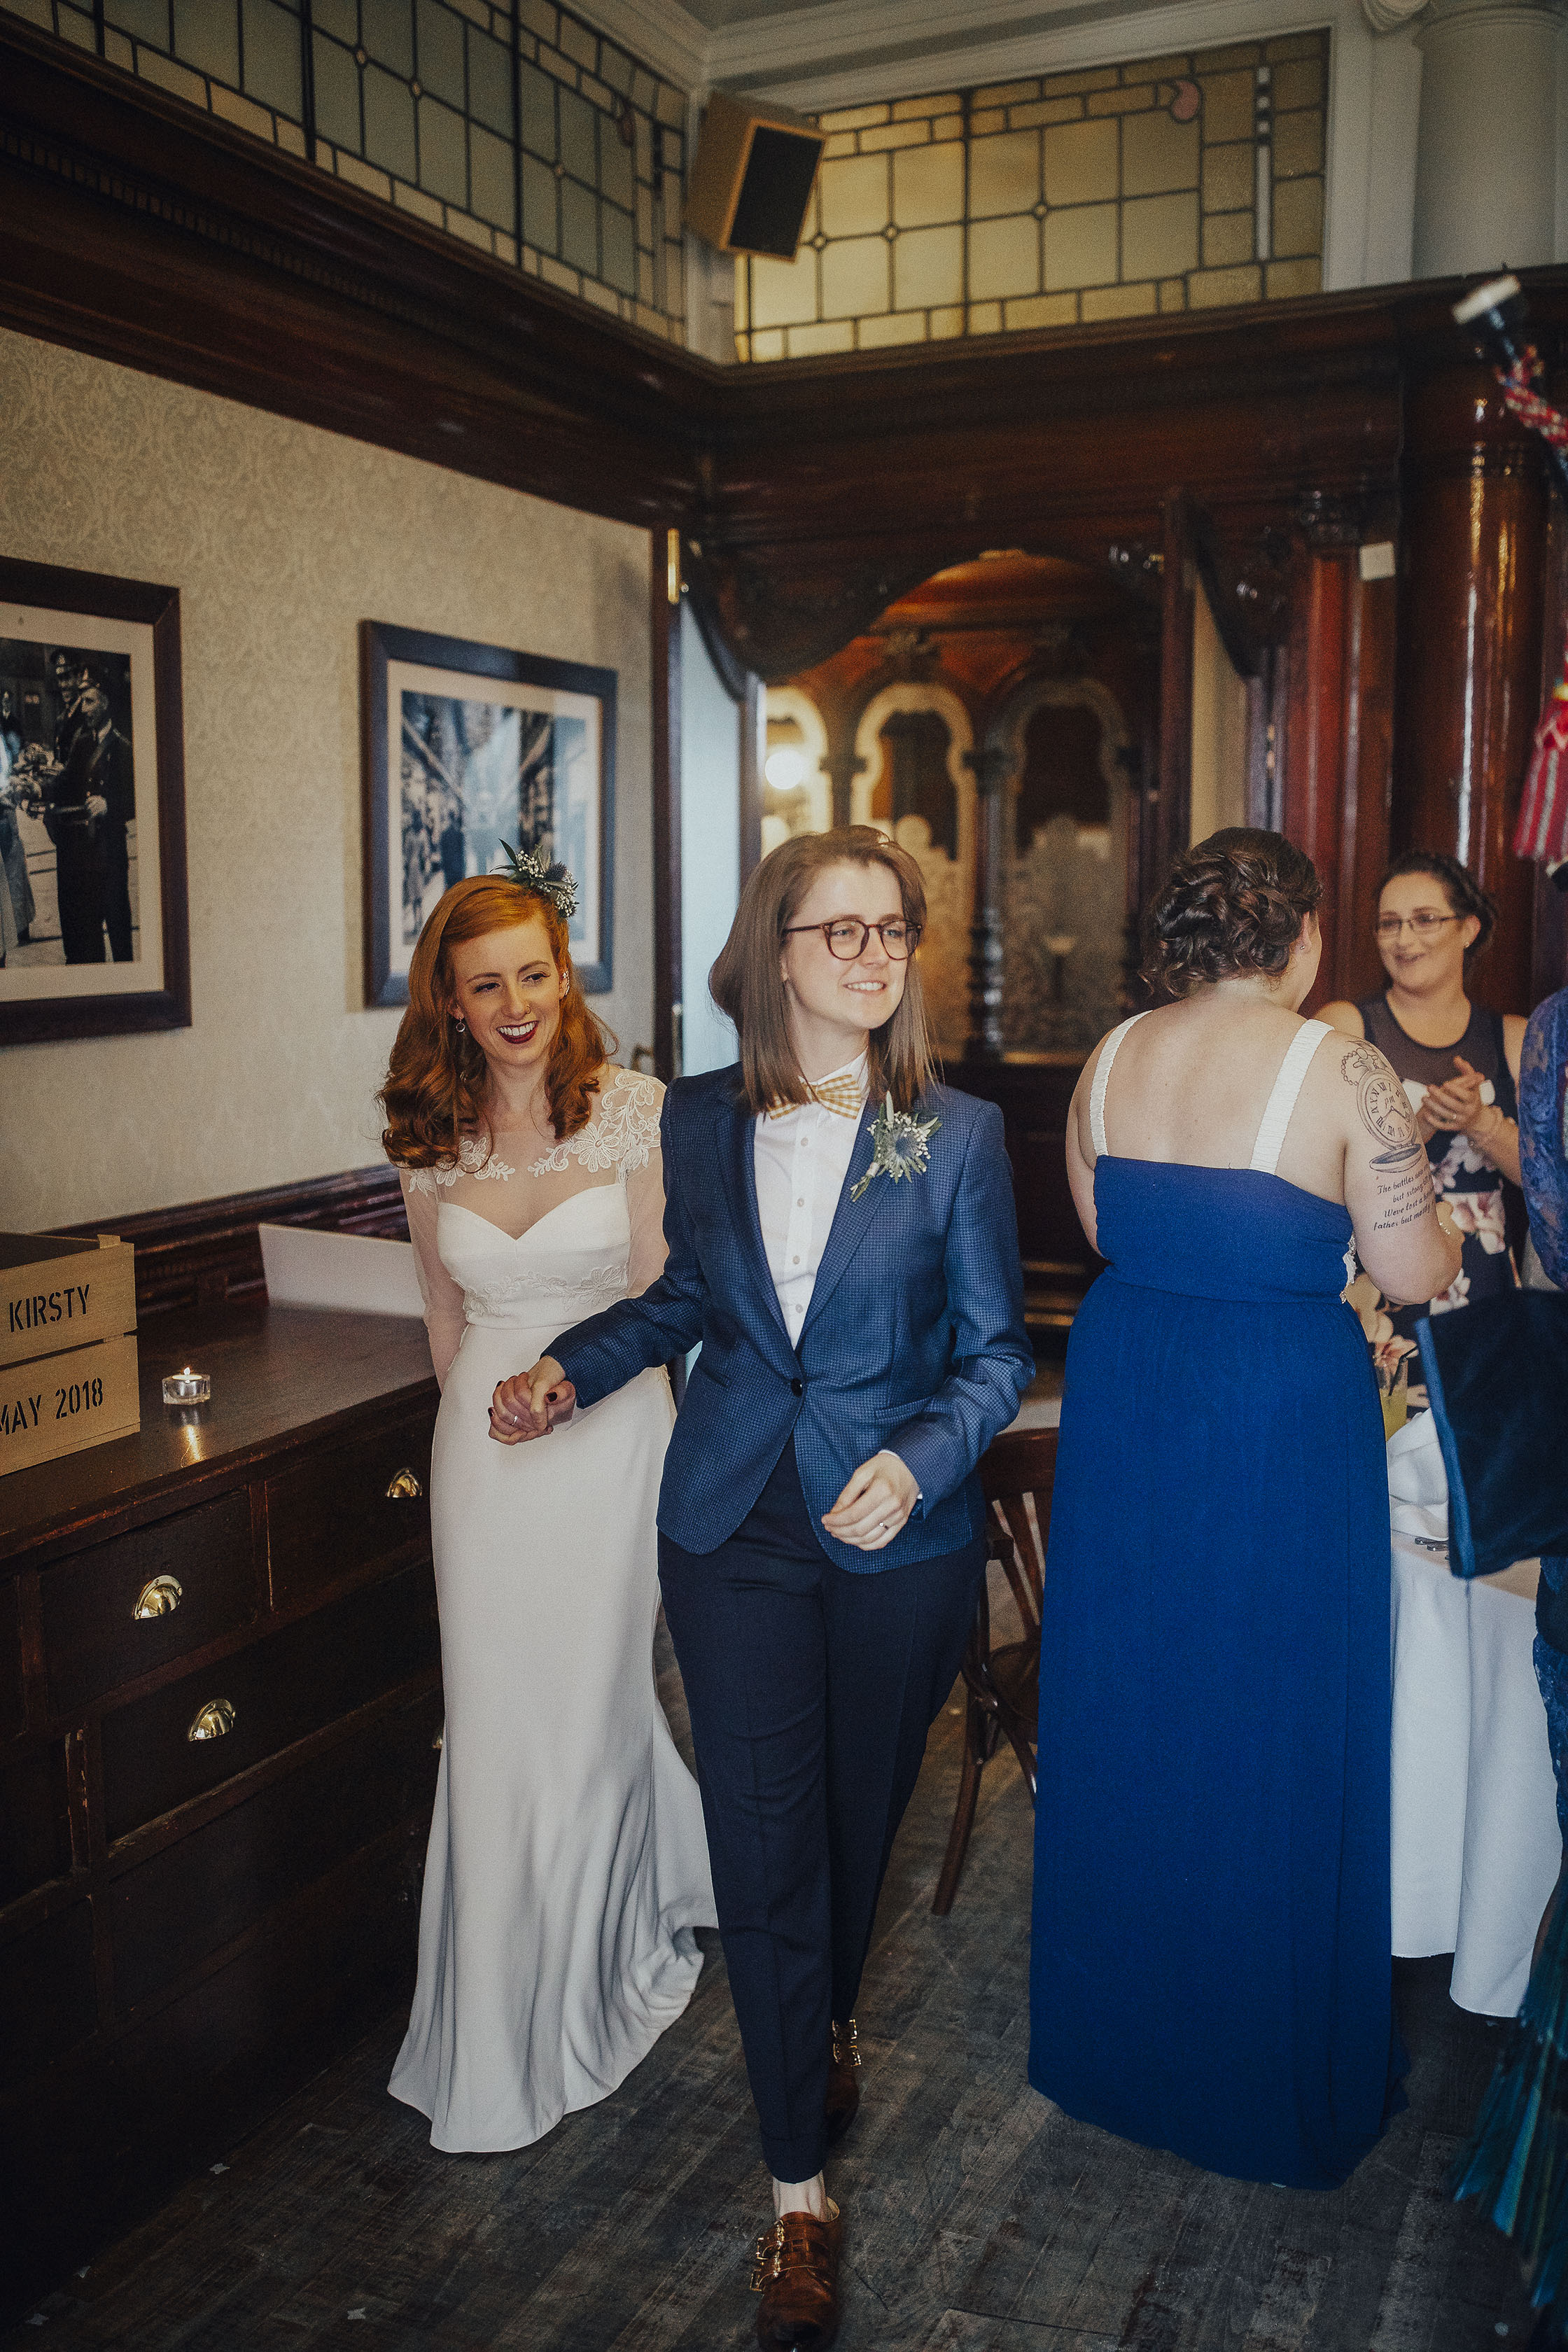 SAME_SEX_WEDDING_PHOTOGRAPHER_SLOANS_GLASGOW_PJ_PHILLIPS_PHOTOGRAPHY_77.jpg